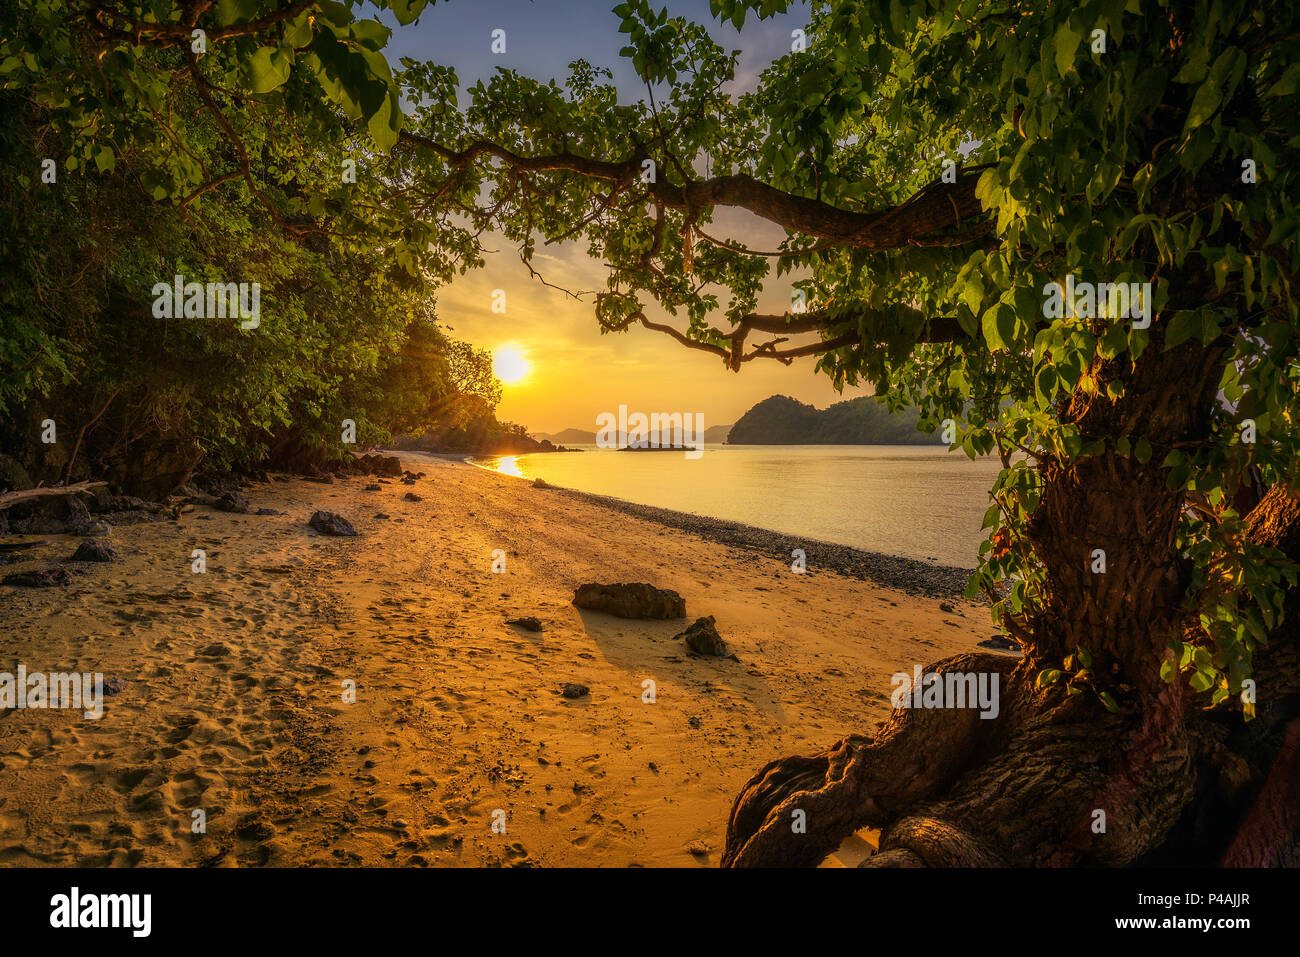 Sunset over the beach of Ko Hong island in the Krabi province, Thailand - Stock Image